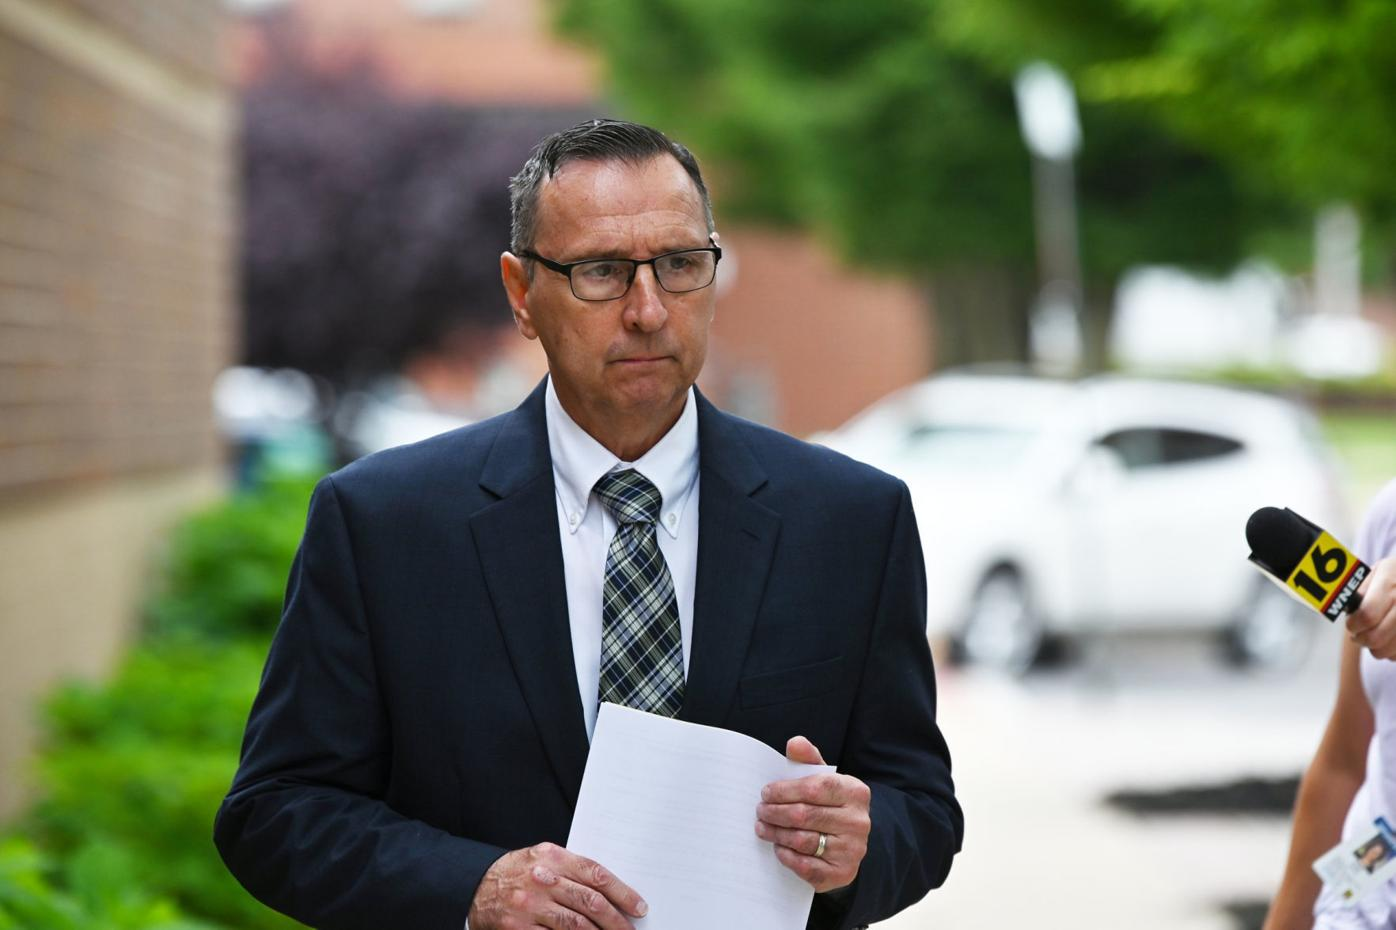 Friend of ex-mayor may be sentenced next month